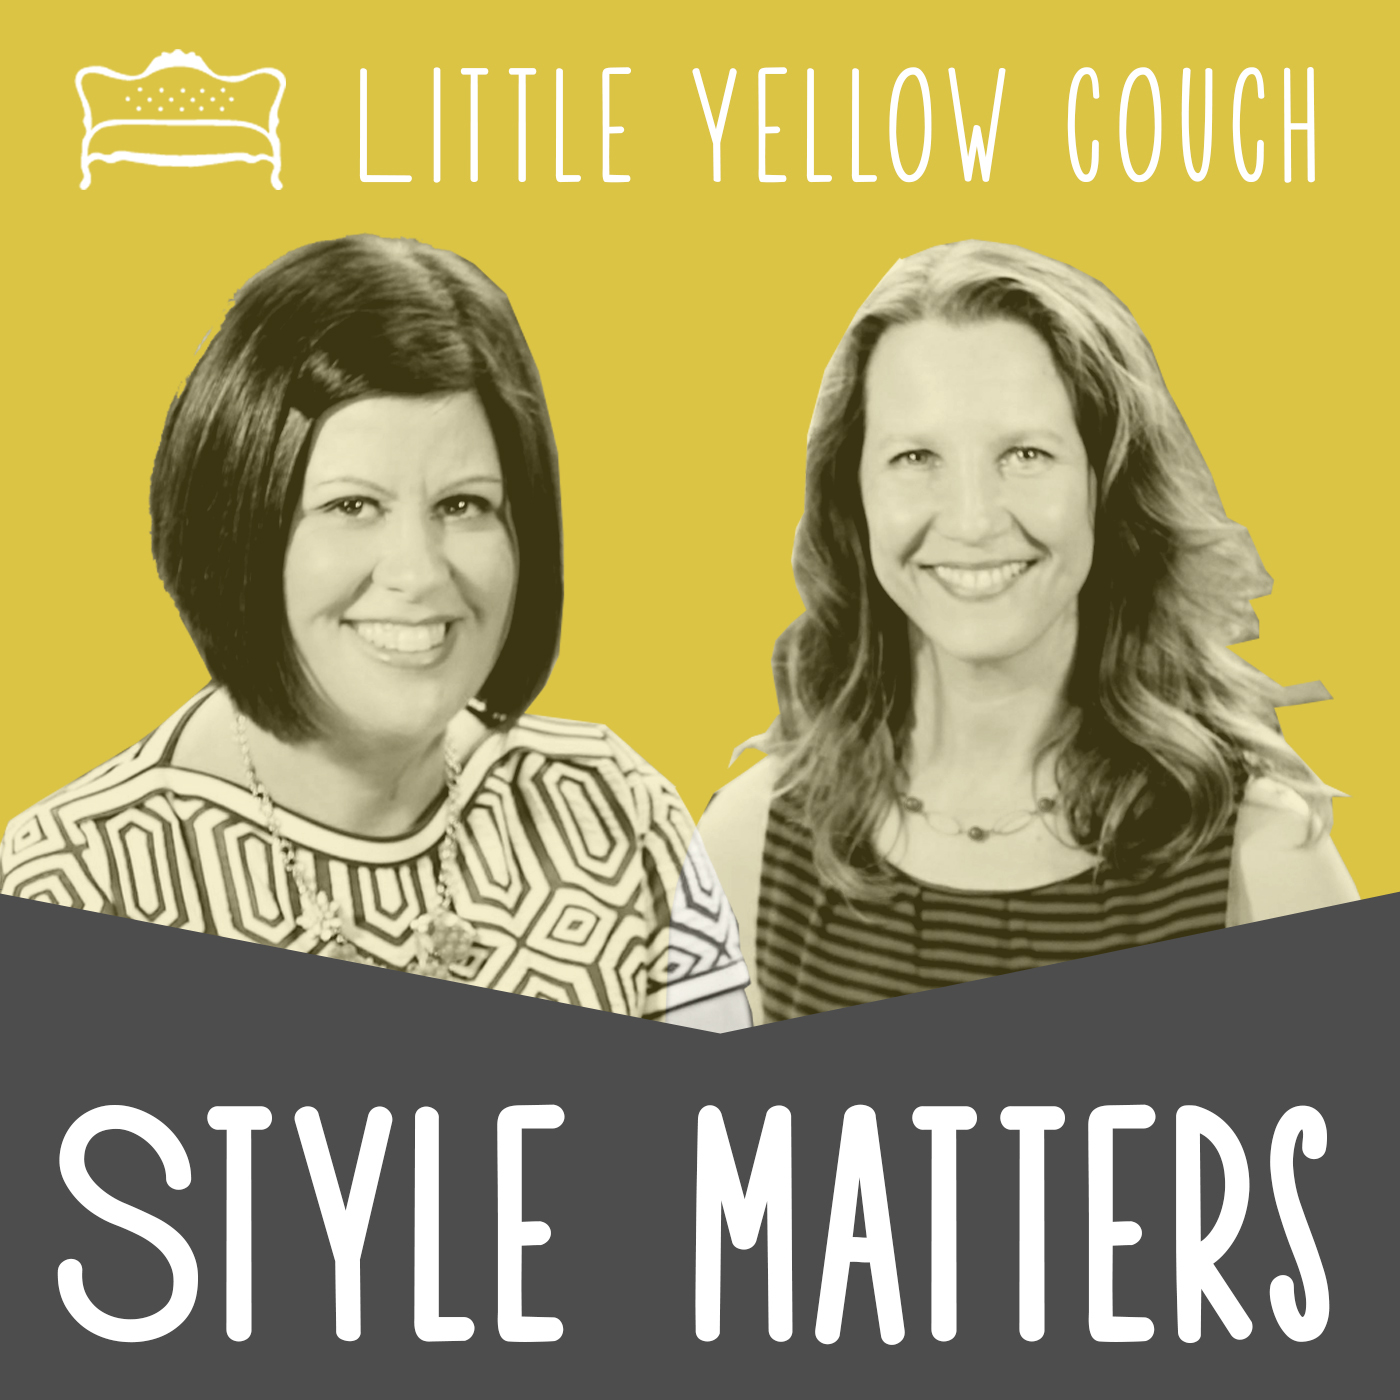 Style Matters - Little Yellow Couch